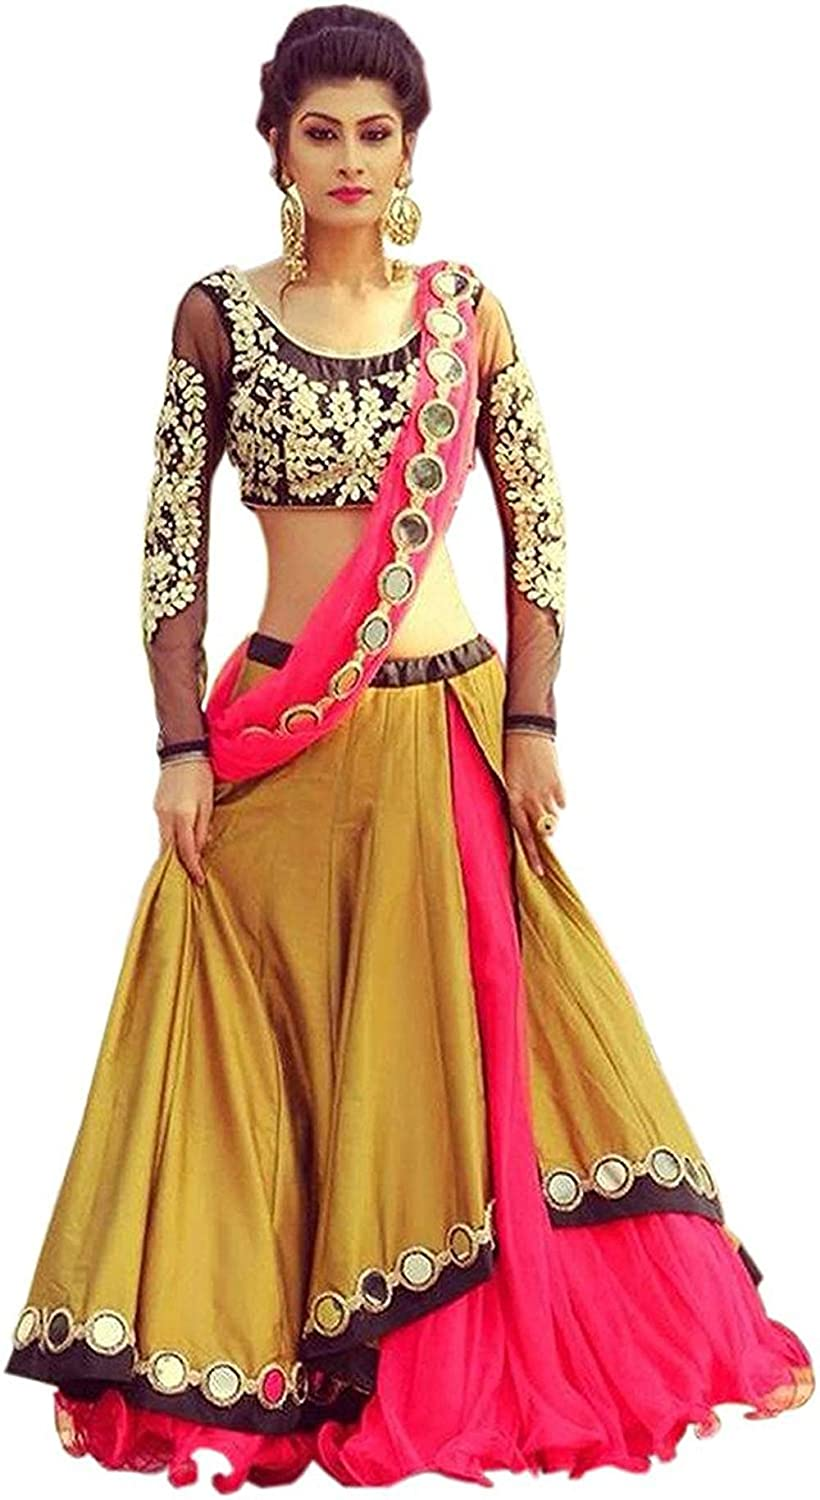 Buy Vkaran Women S Silk Lehenga Choli Lg021 Yellow Free At Amazon In